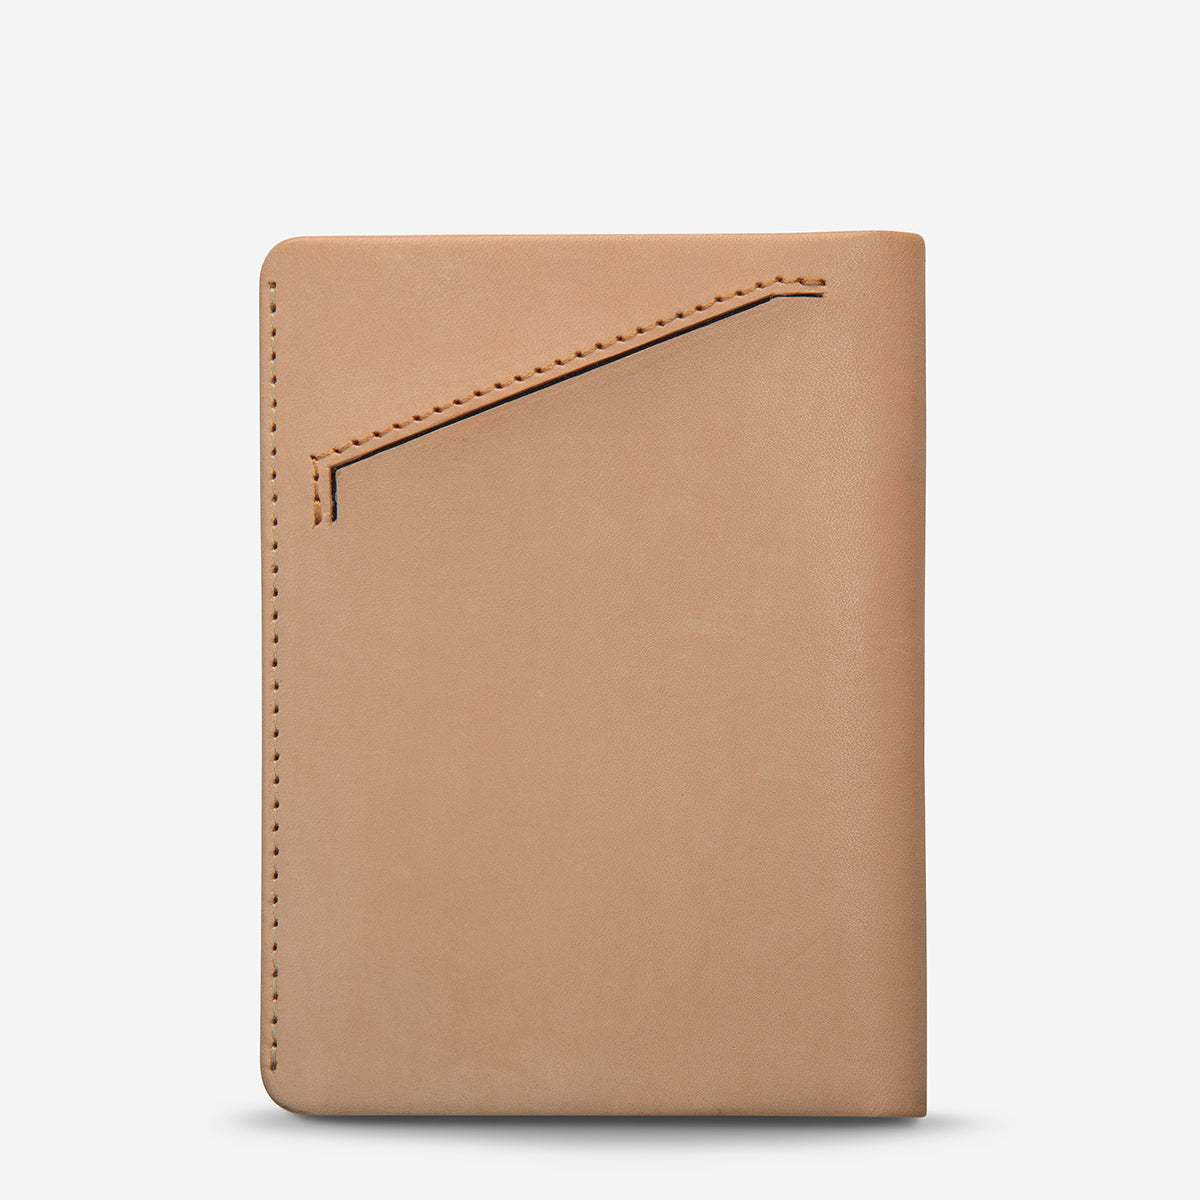 Status Anxiety Conquest Leather Passport Wallet - Tan